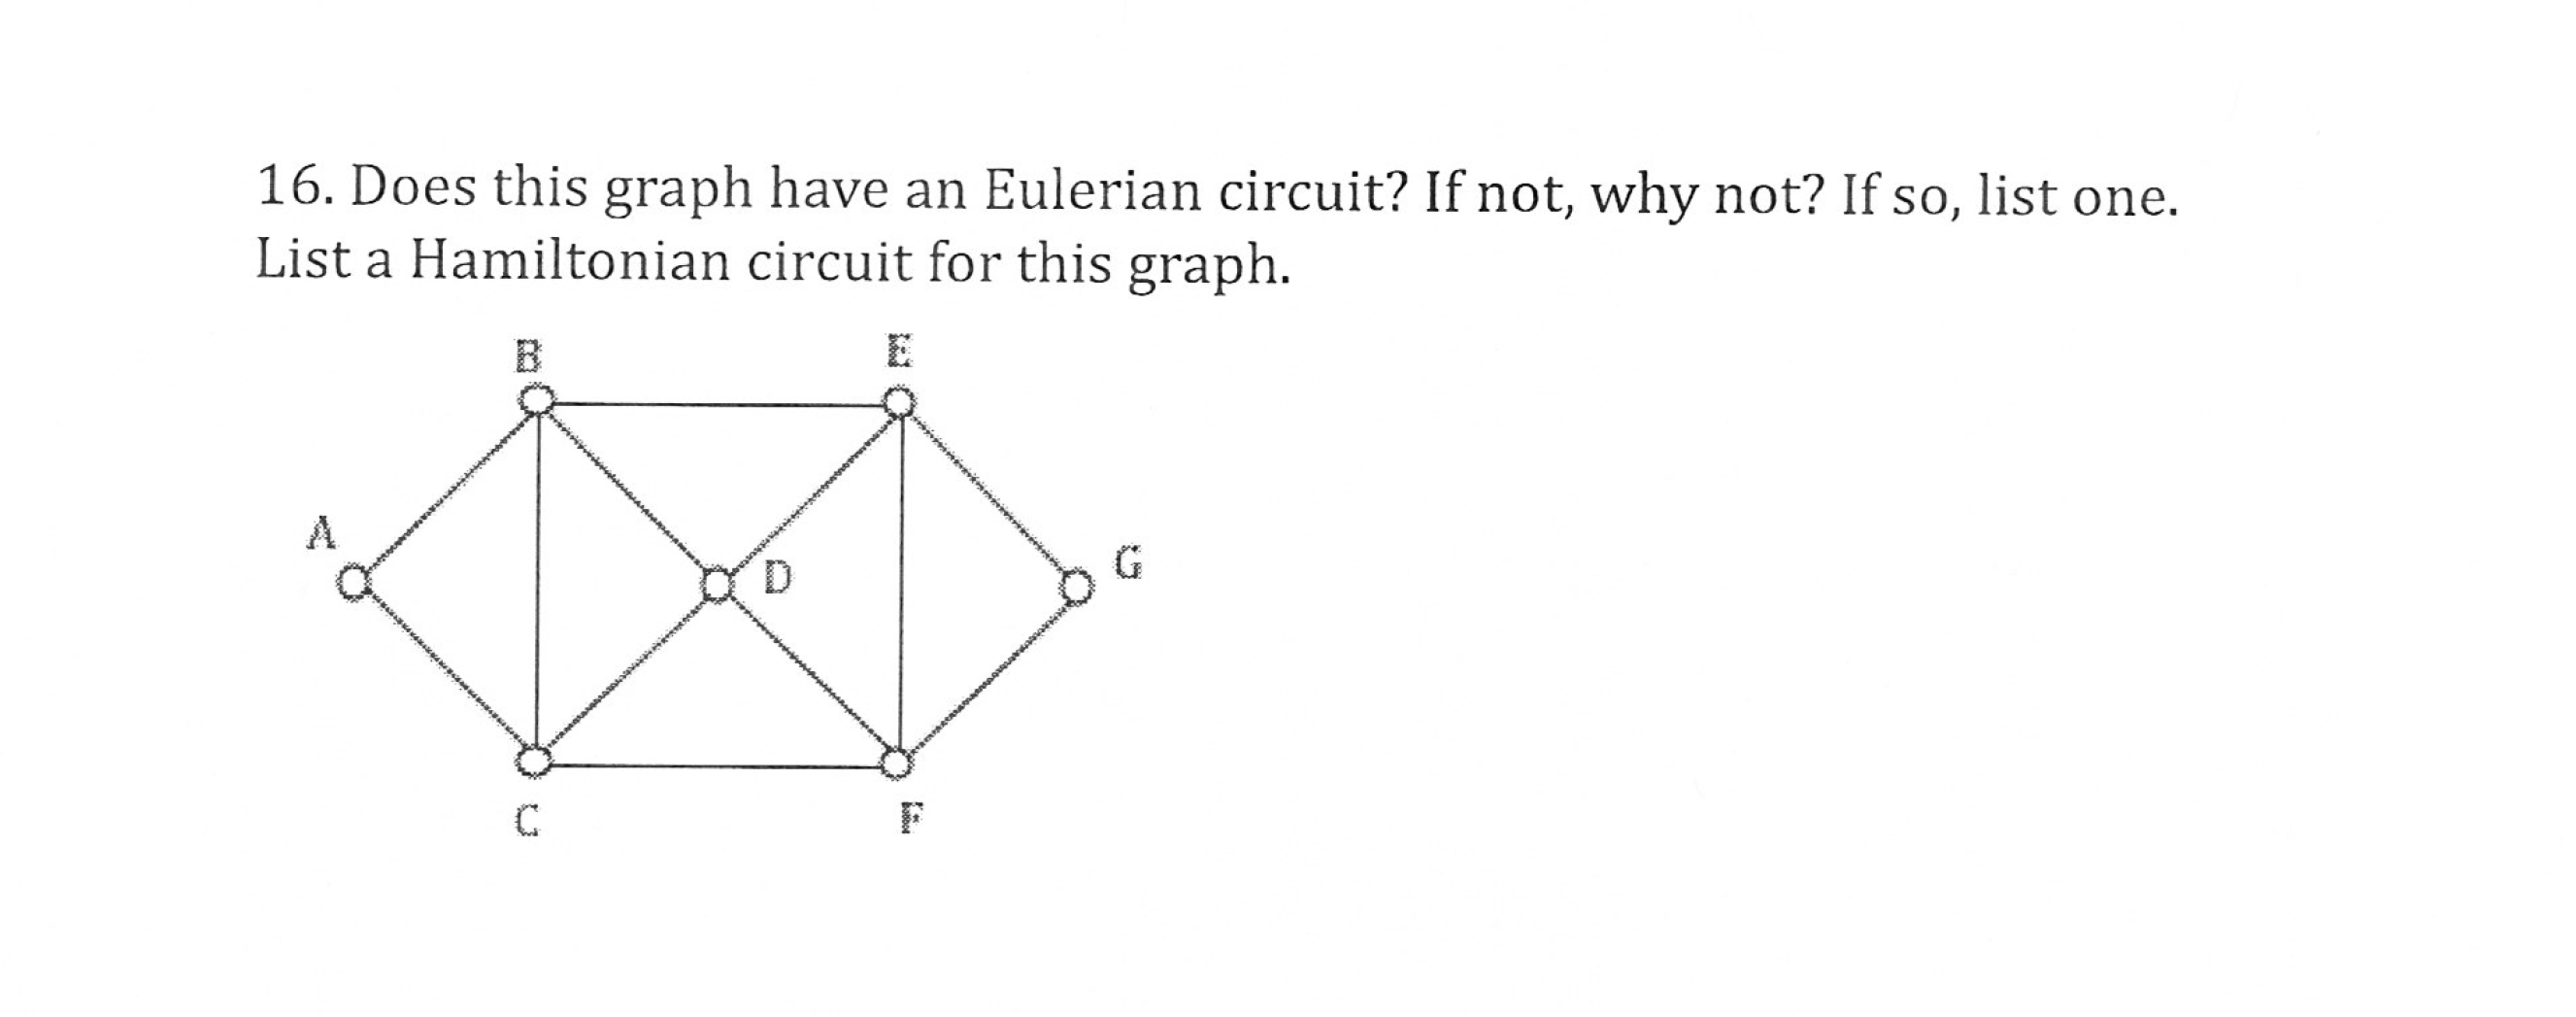 16. Does this graph have an Eulerian circuit? If not, why not? If so, list one. List a Hamiltonian circuit for this graph